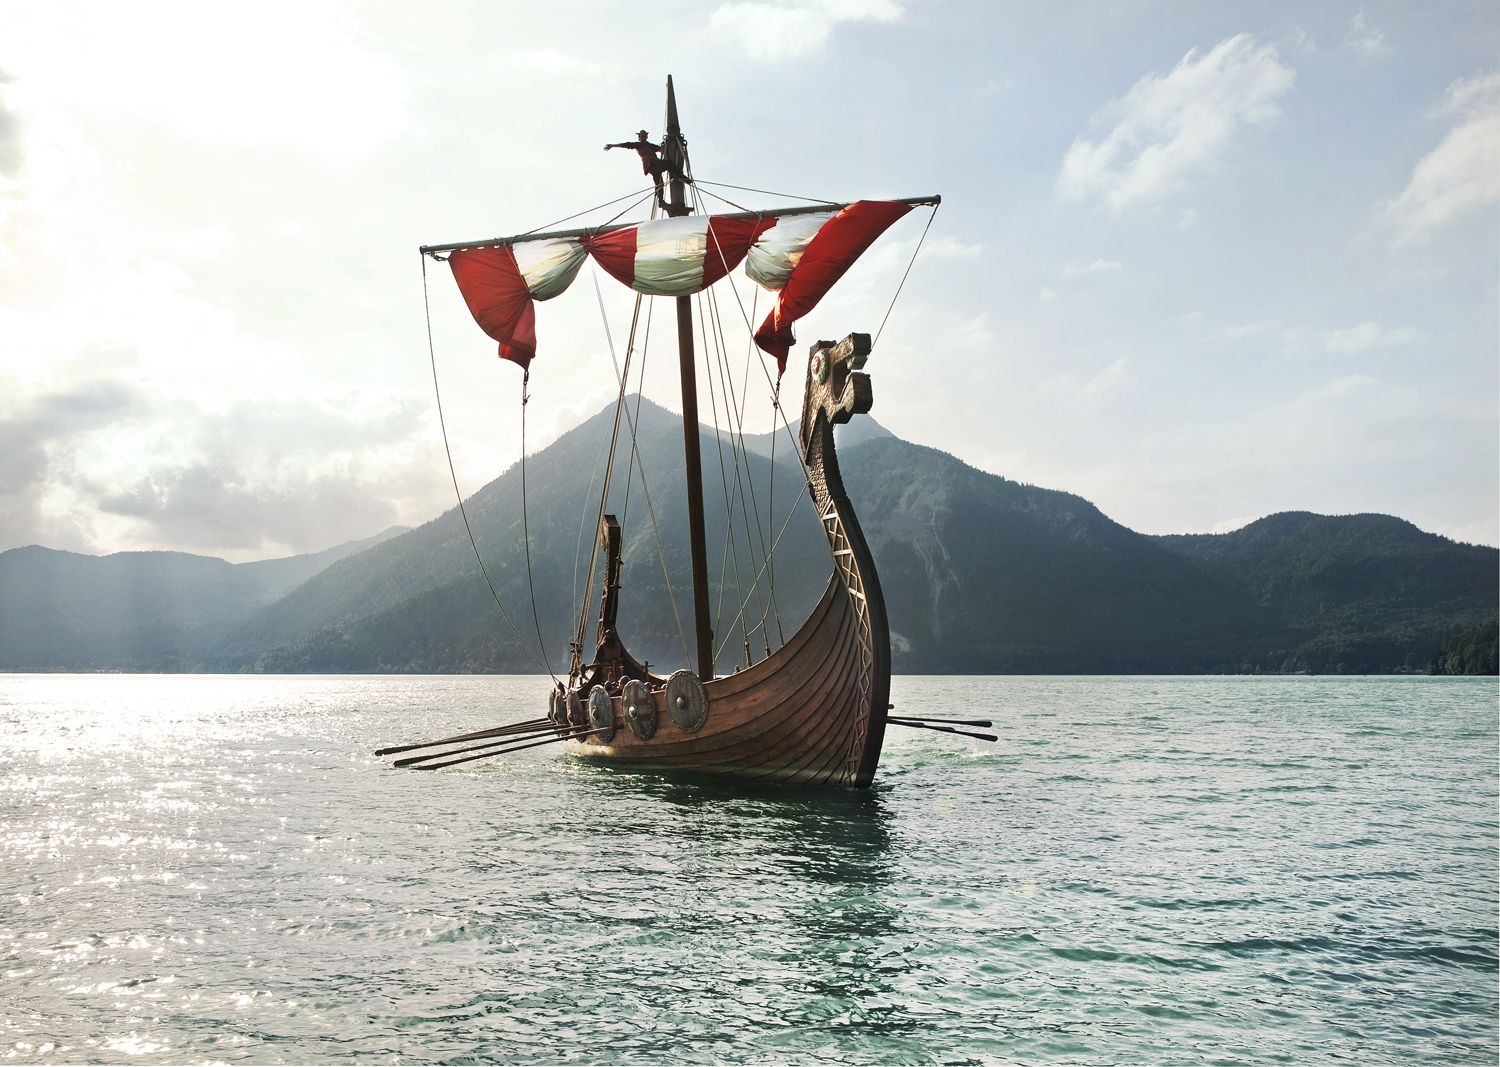 Viking Ships Were Vessels Used During The Viking Age In Northern Europe Scandinavian Tradition Of Shipbuilding During The Viking A Viking Ship Vikings Sailing